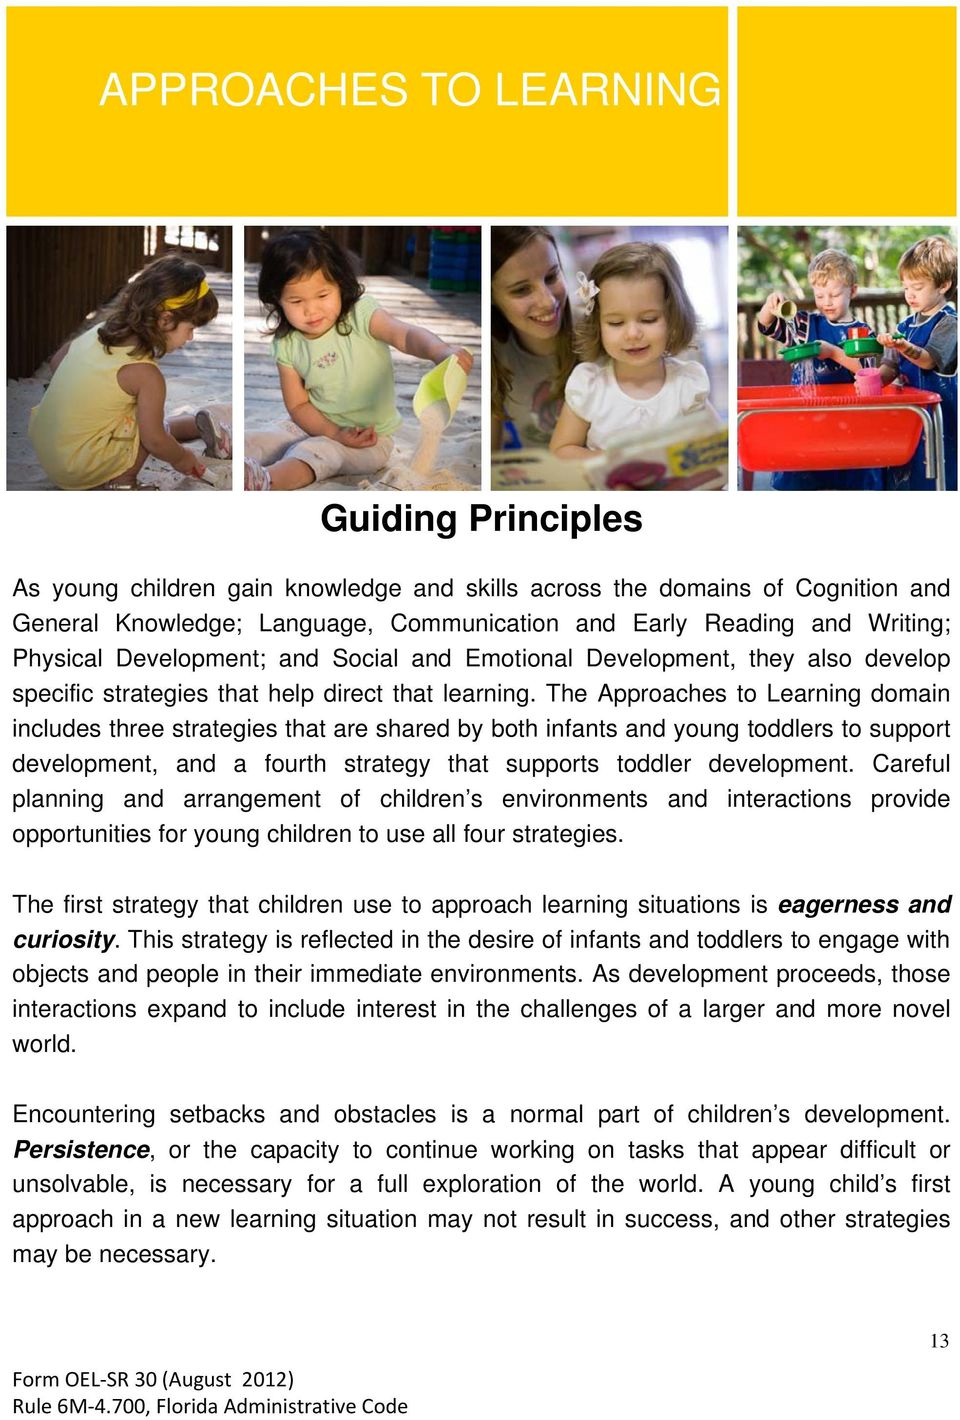 The Approaches to Learning domain includes three strategies that are shared by both infants and young toddlers to support development, and a fourth strategy that supports toddler development.